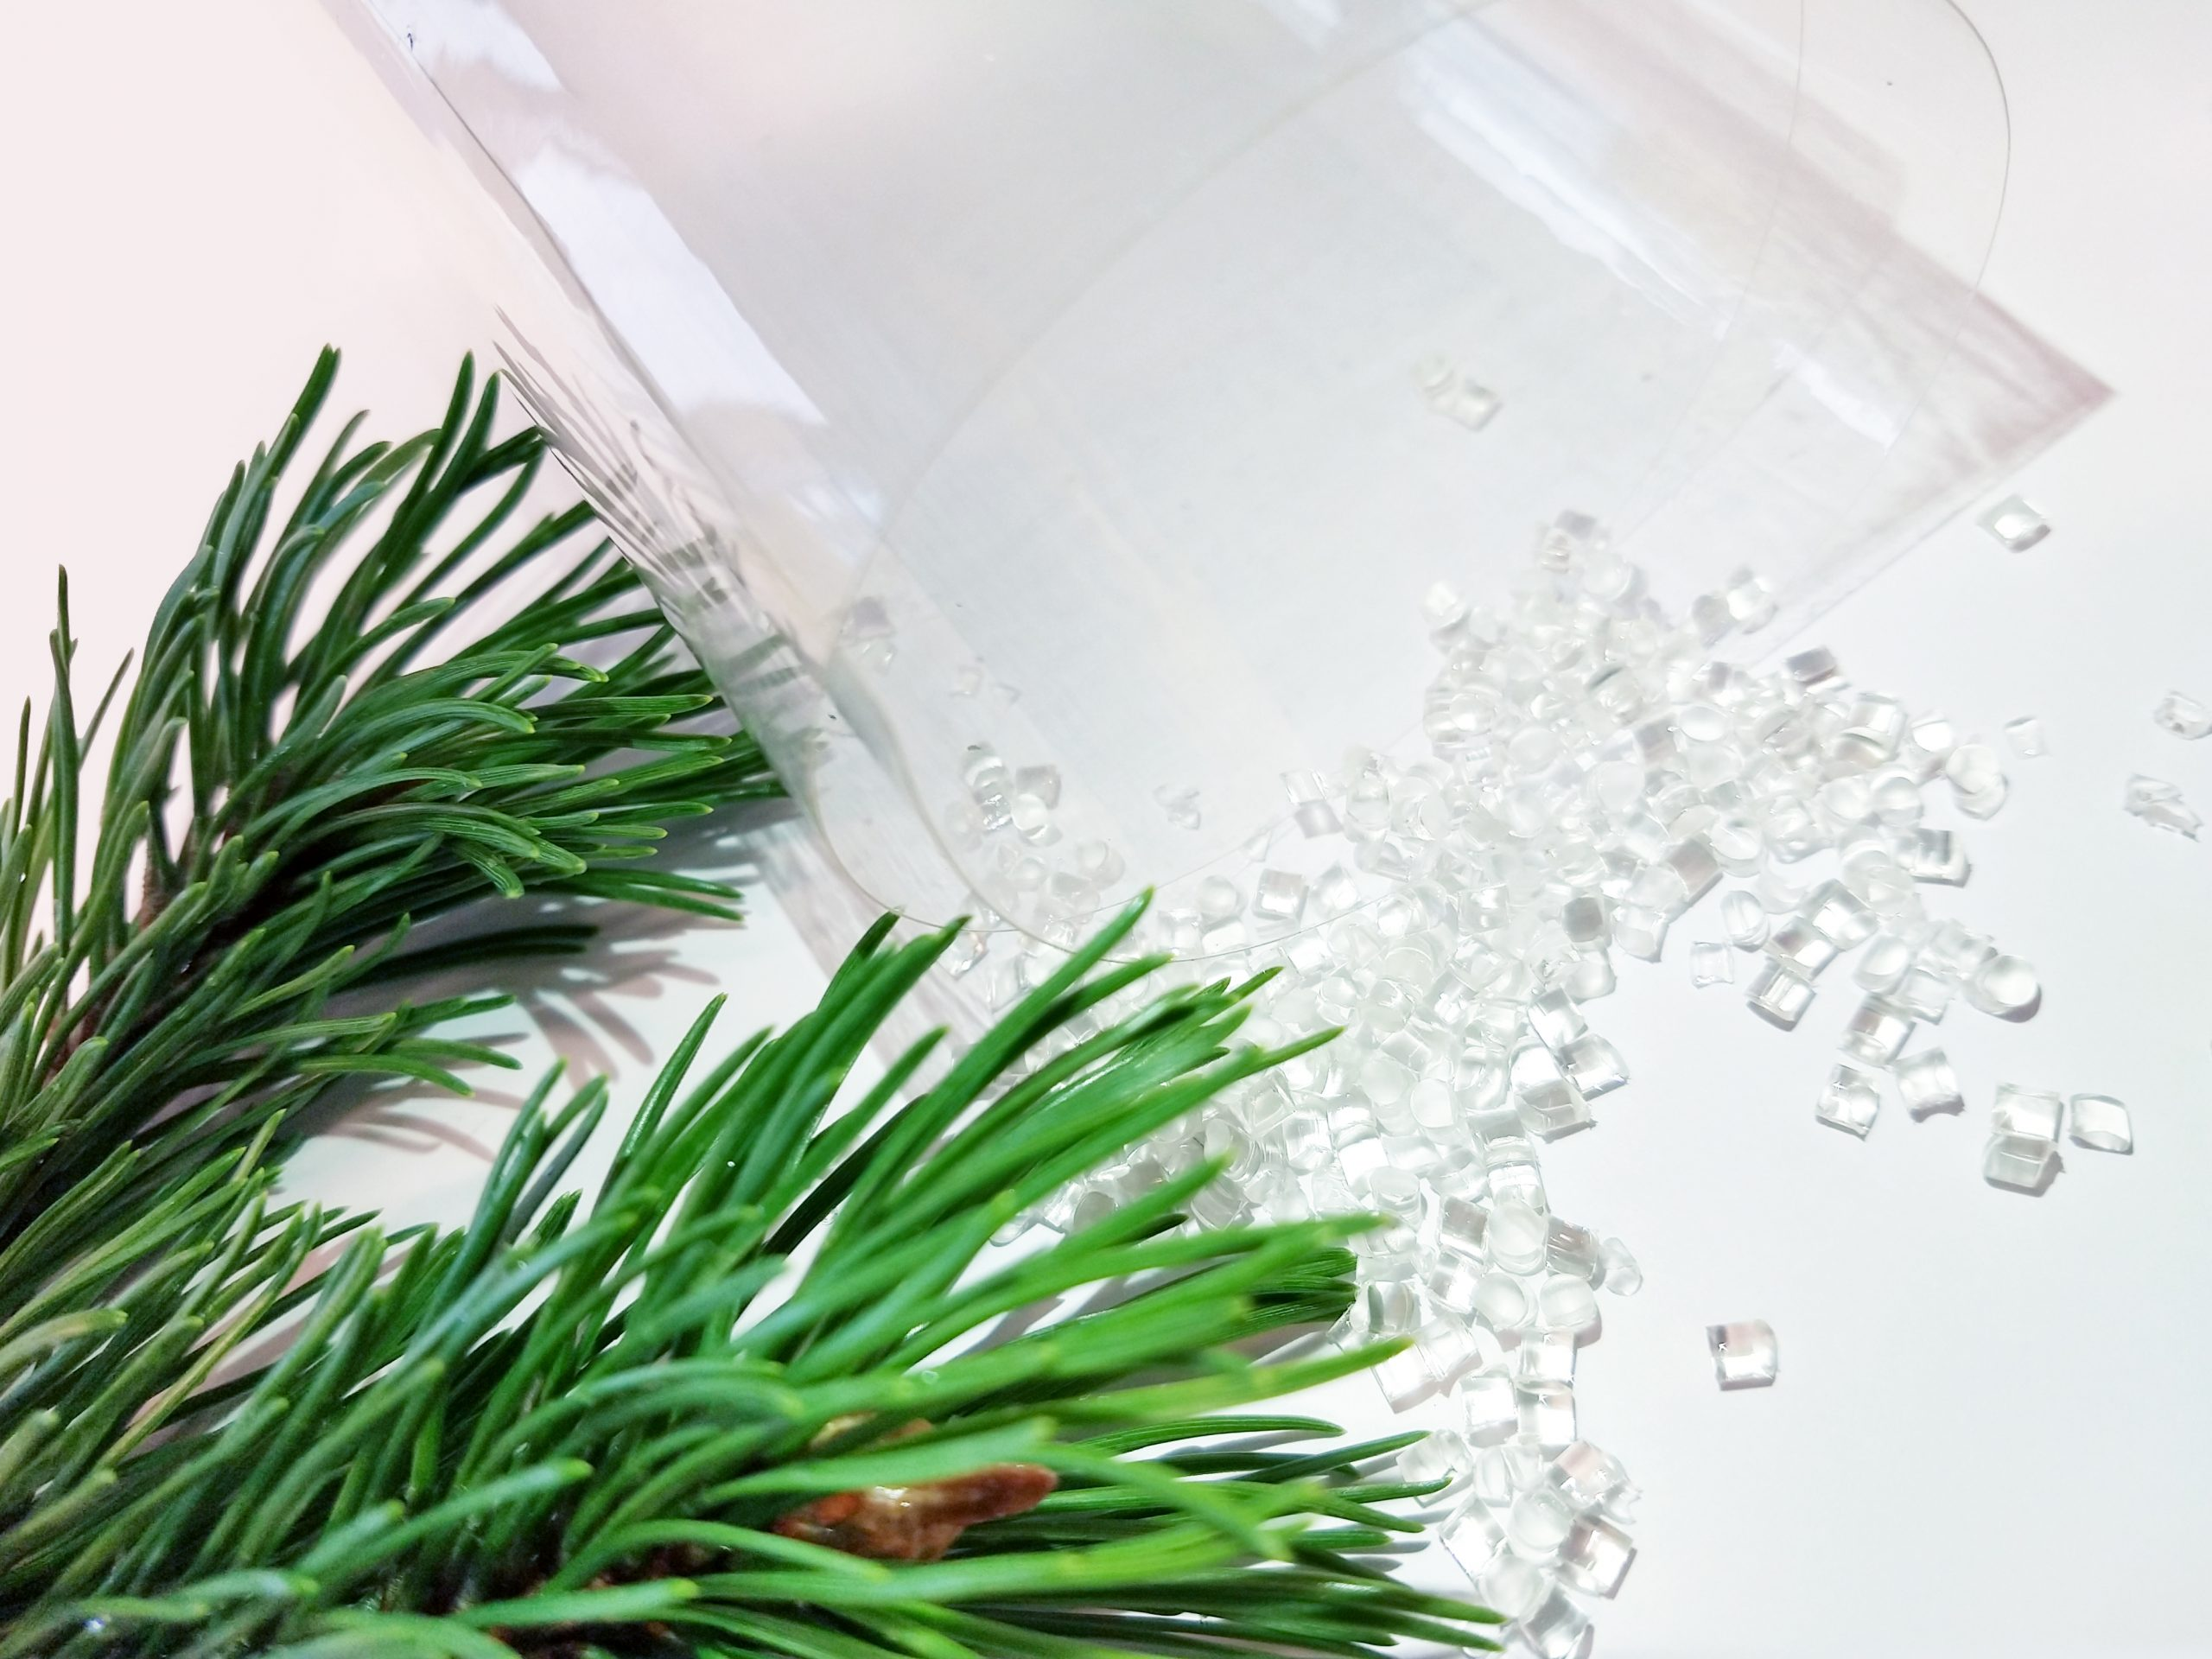 Woodly's wood-based plastic is transparent